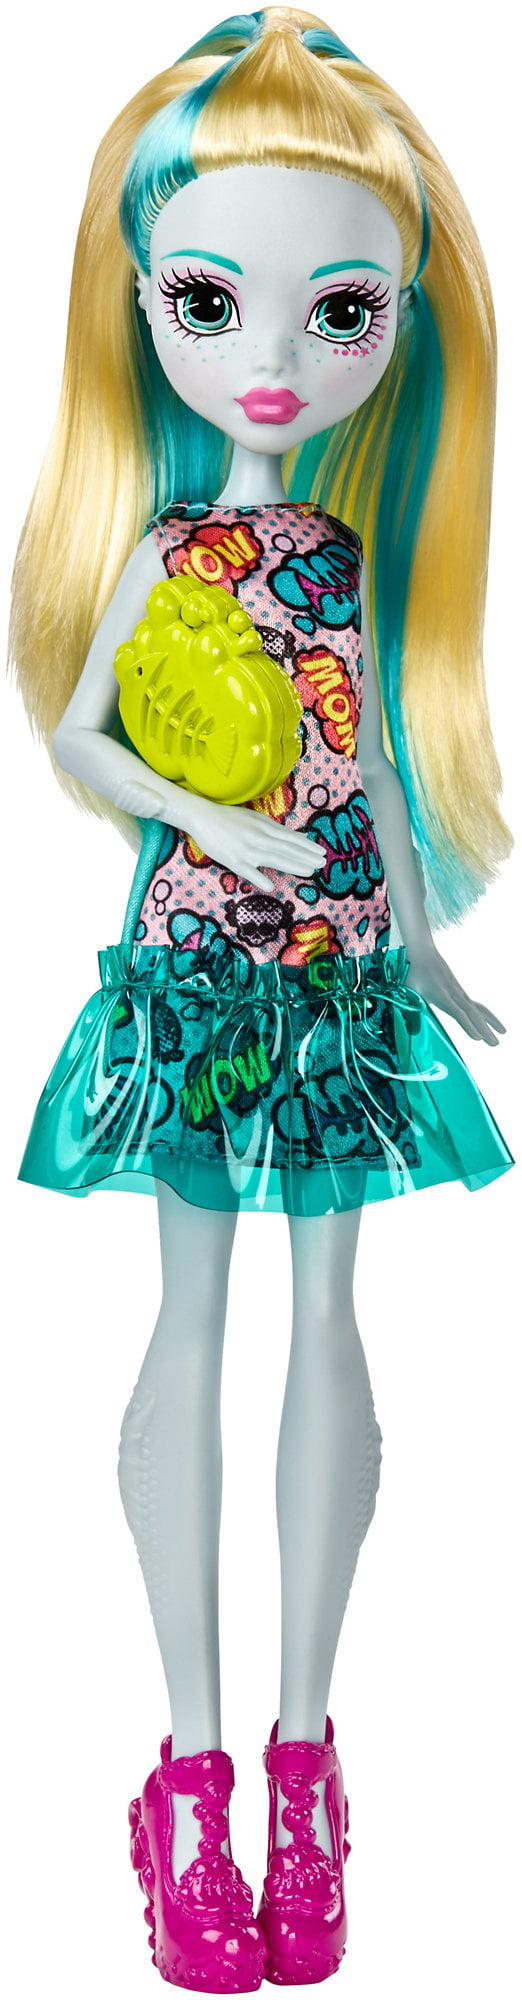 Monster High Lagoona Blue Doll by Supplier Generic